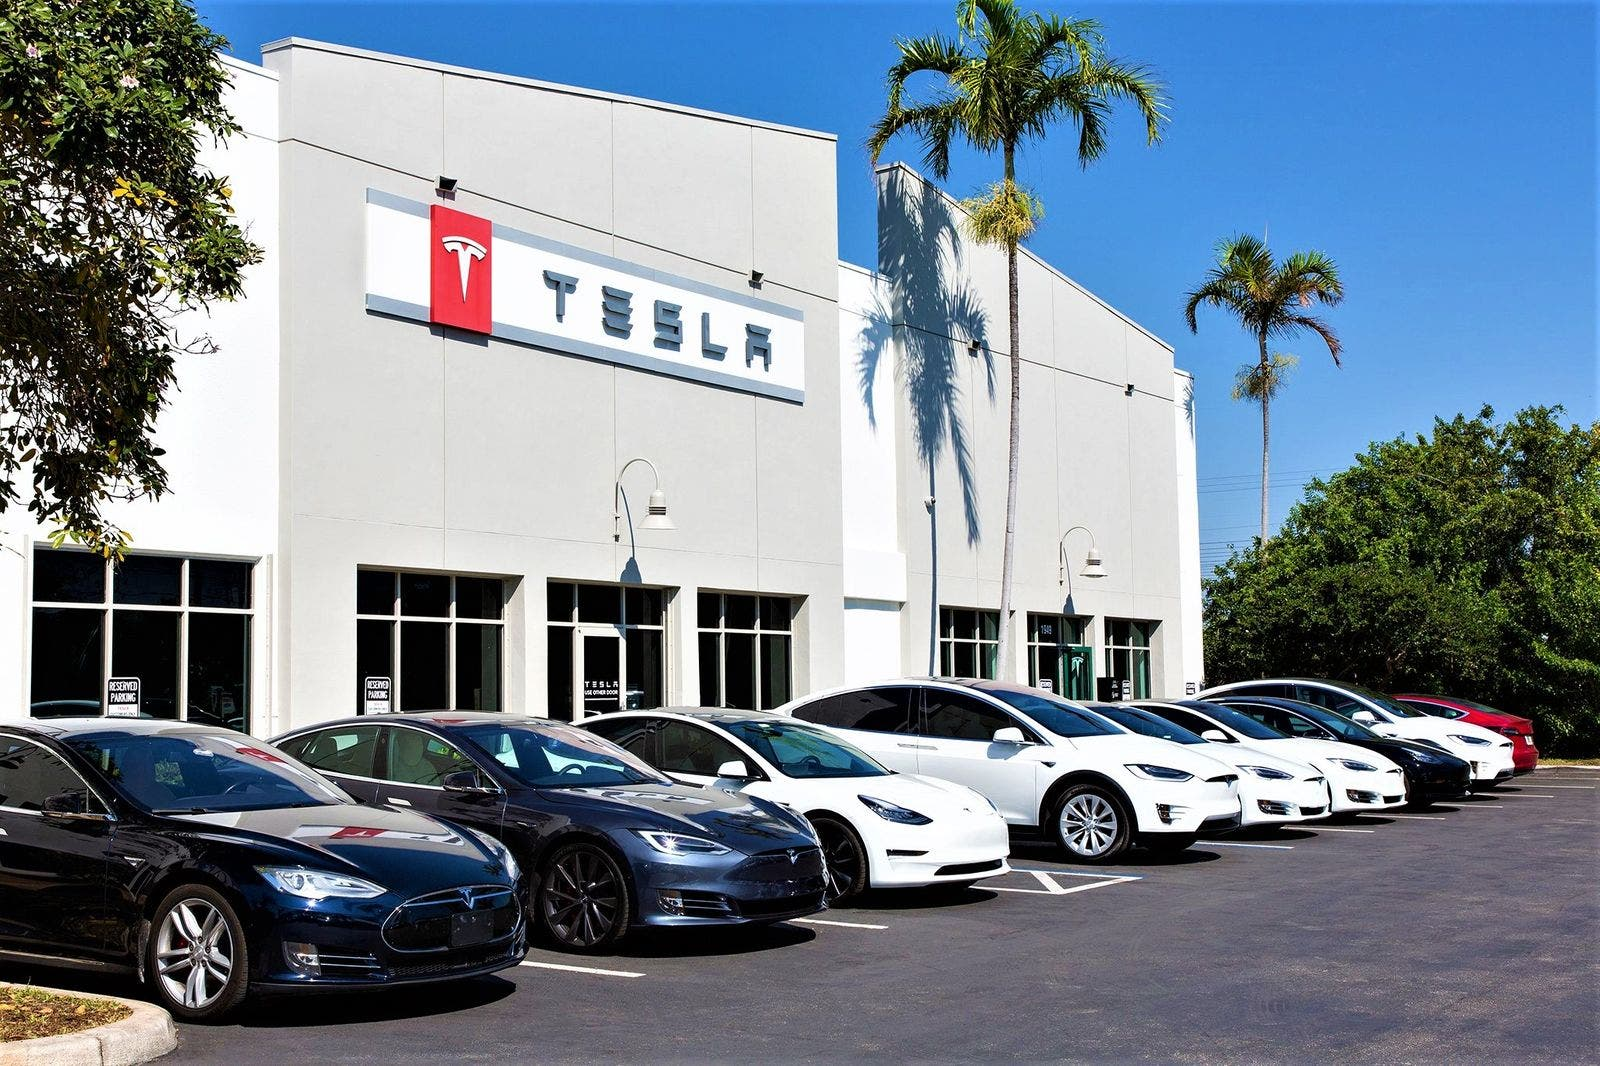 As Electric Vehicle Sales Skyrocket, Tesla Continues to Dominate